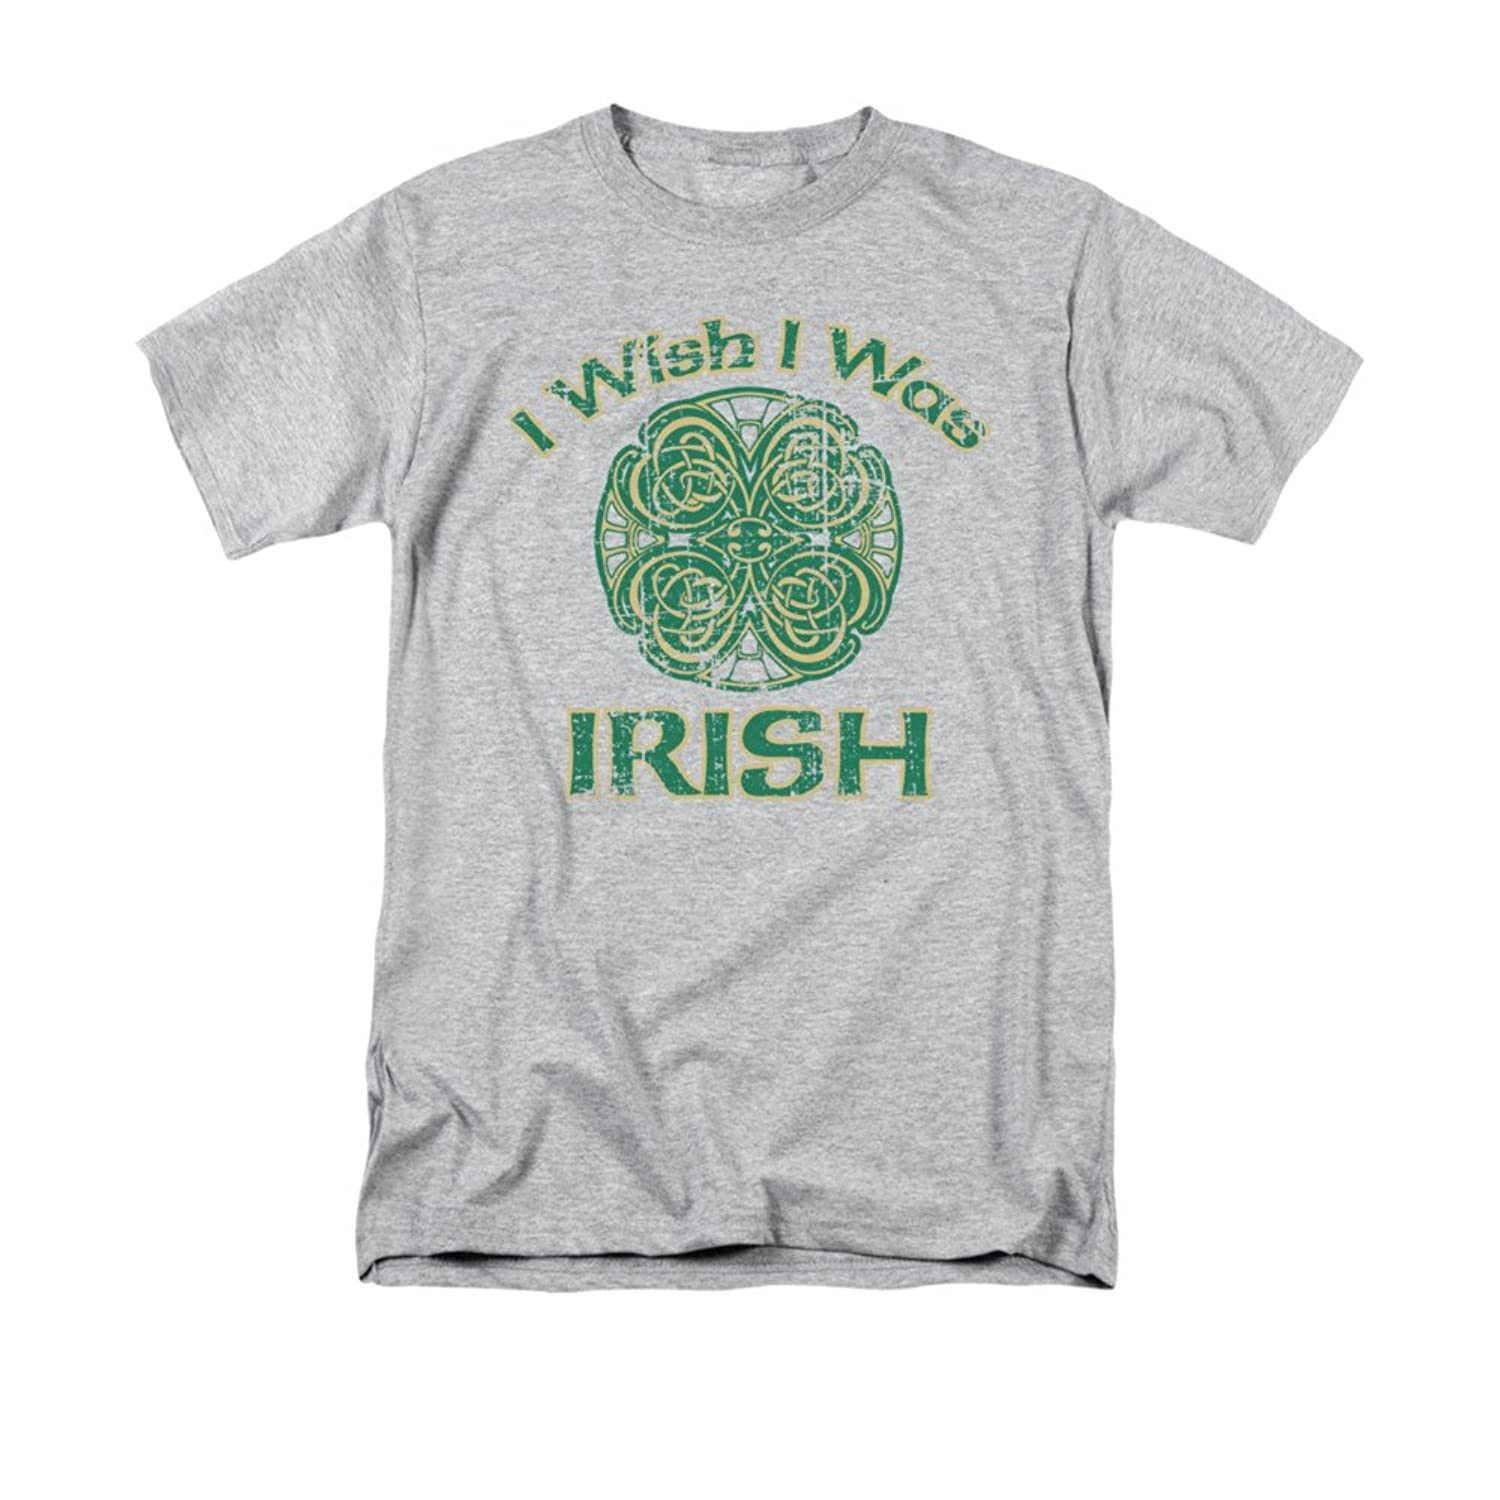 I Wish I Was Irish Celtic Four-Leaf Clover Design Funny Saying Adult T-Shirt Tee